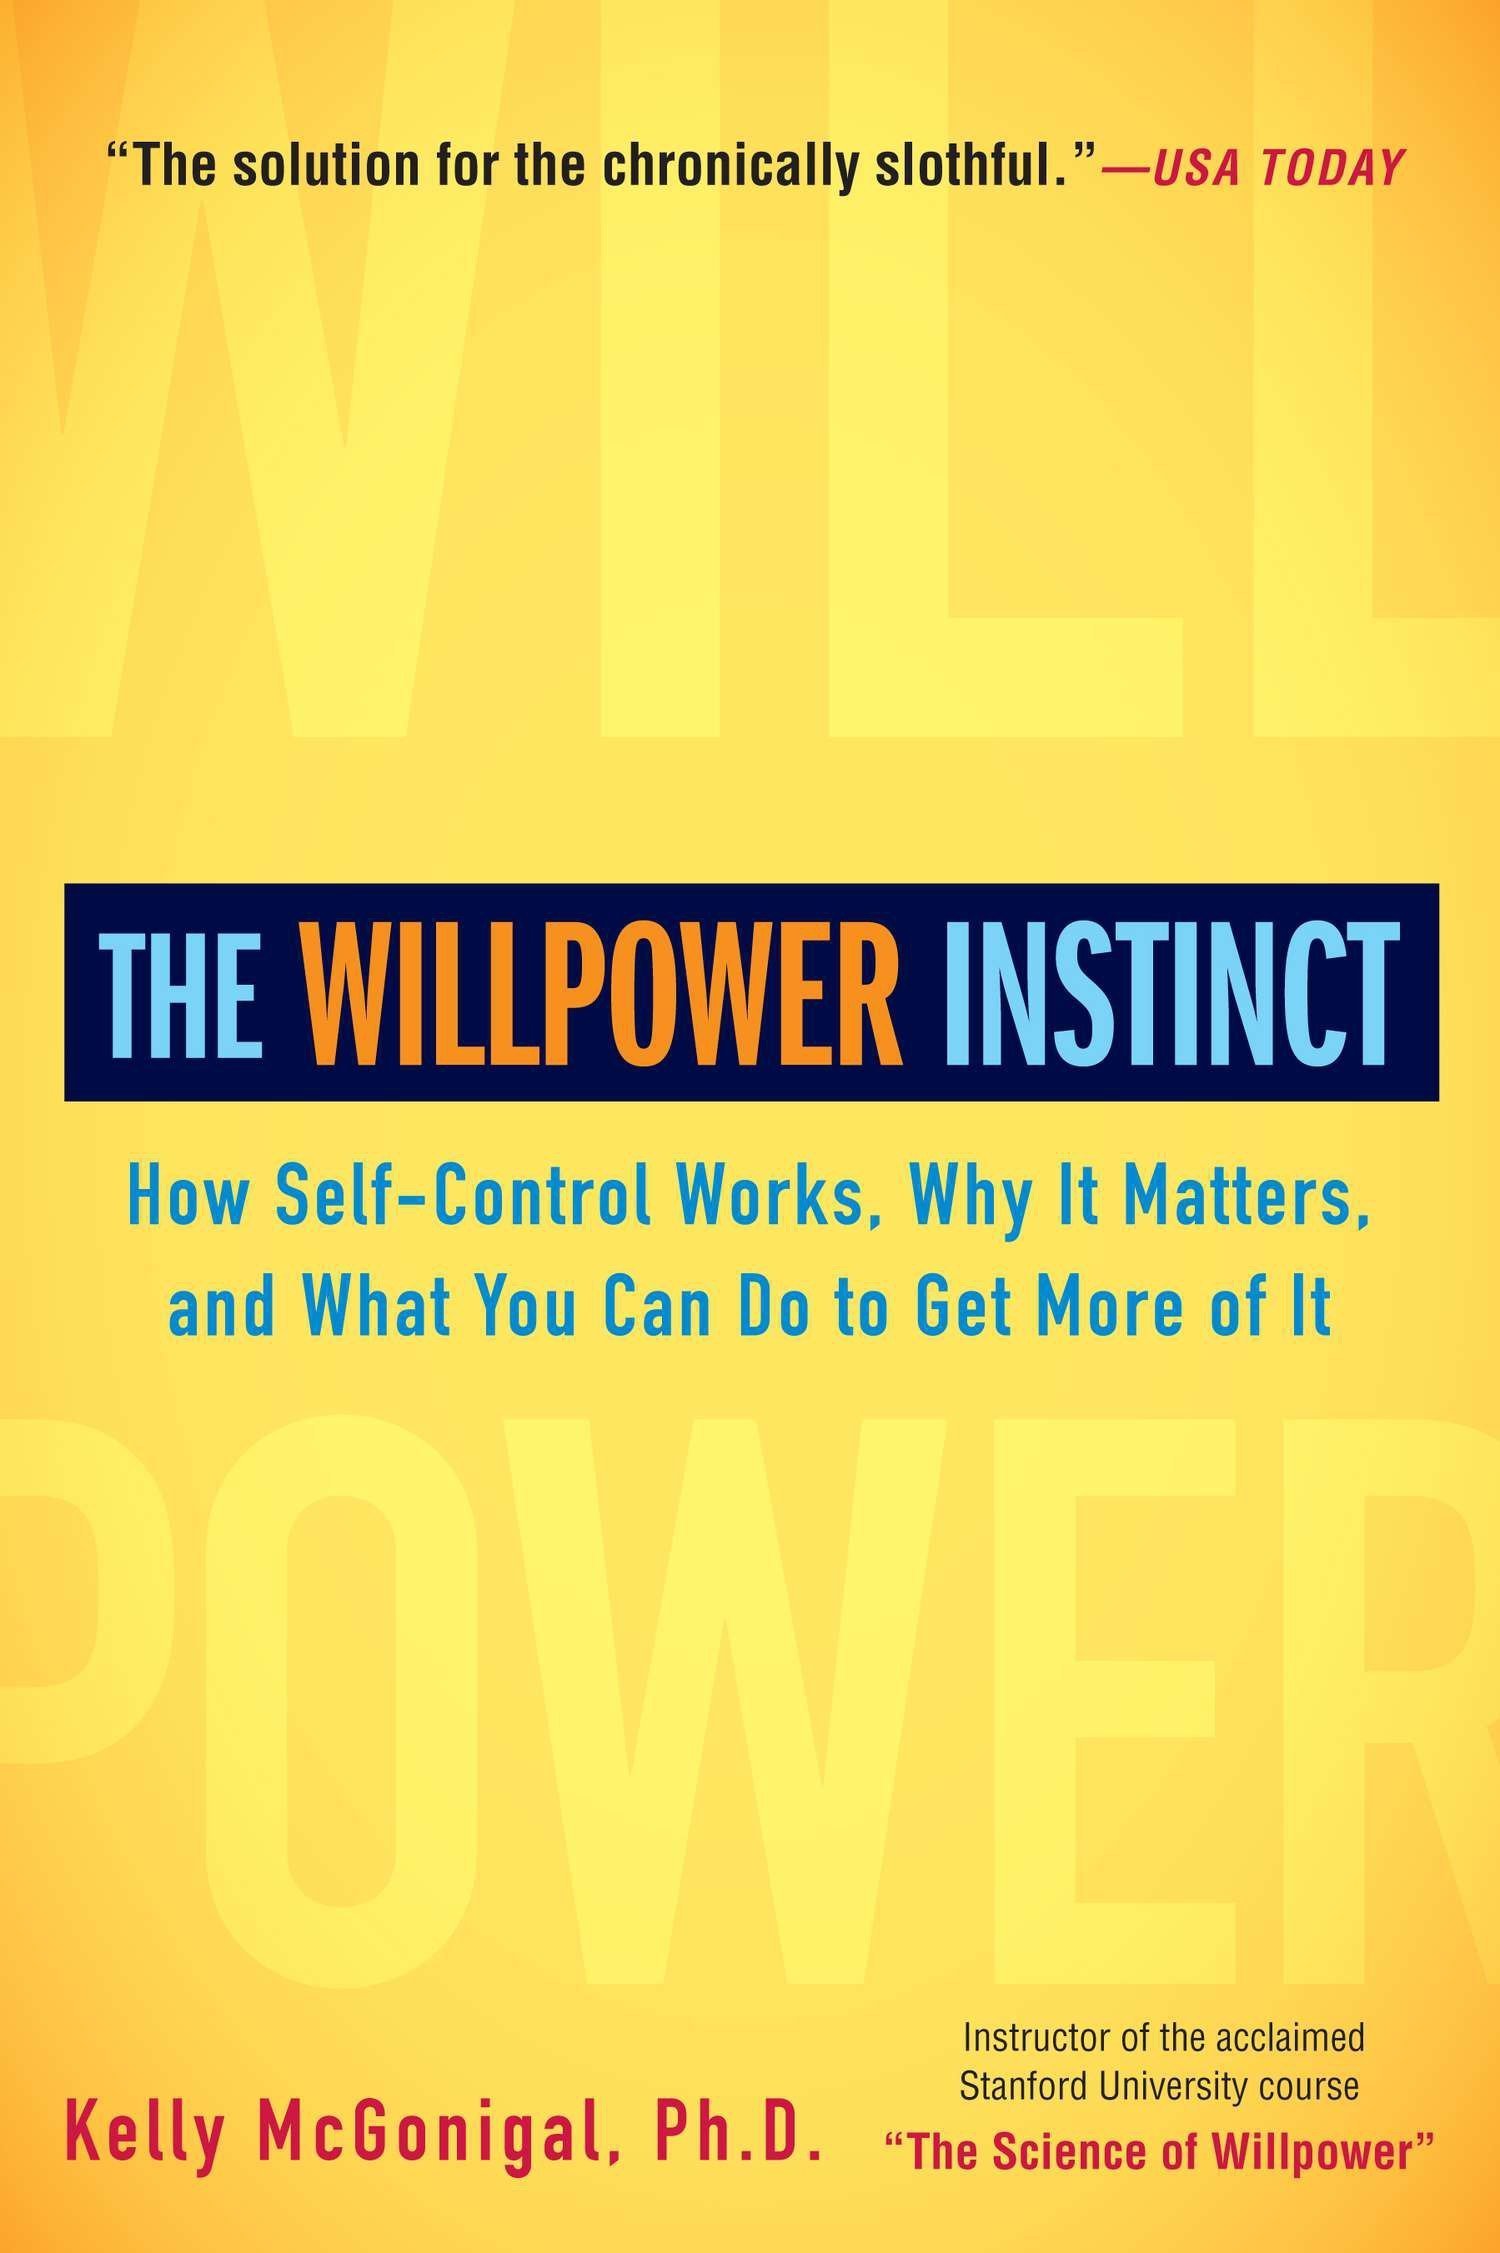 The willpower instinct by Kelly Mcgonigal book cover.